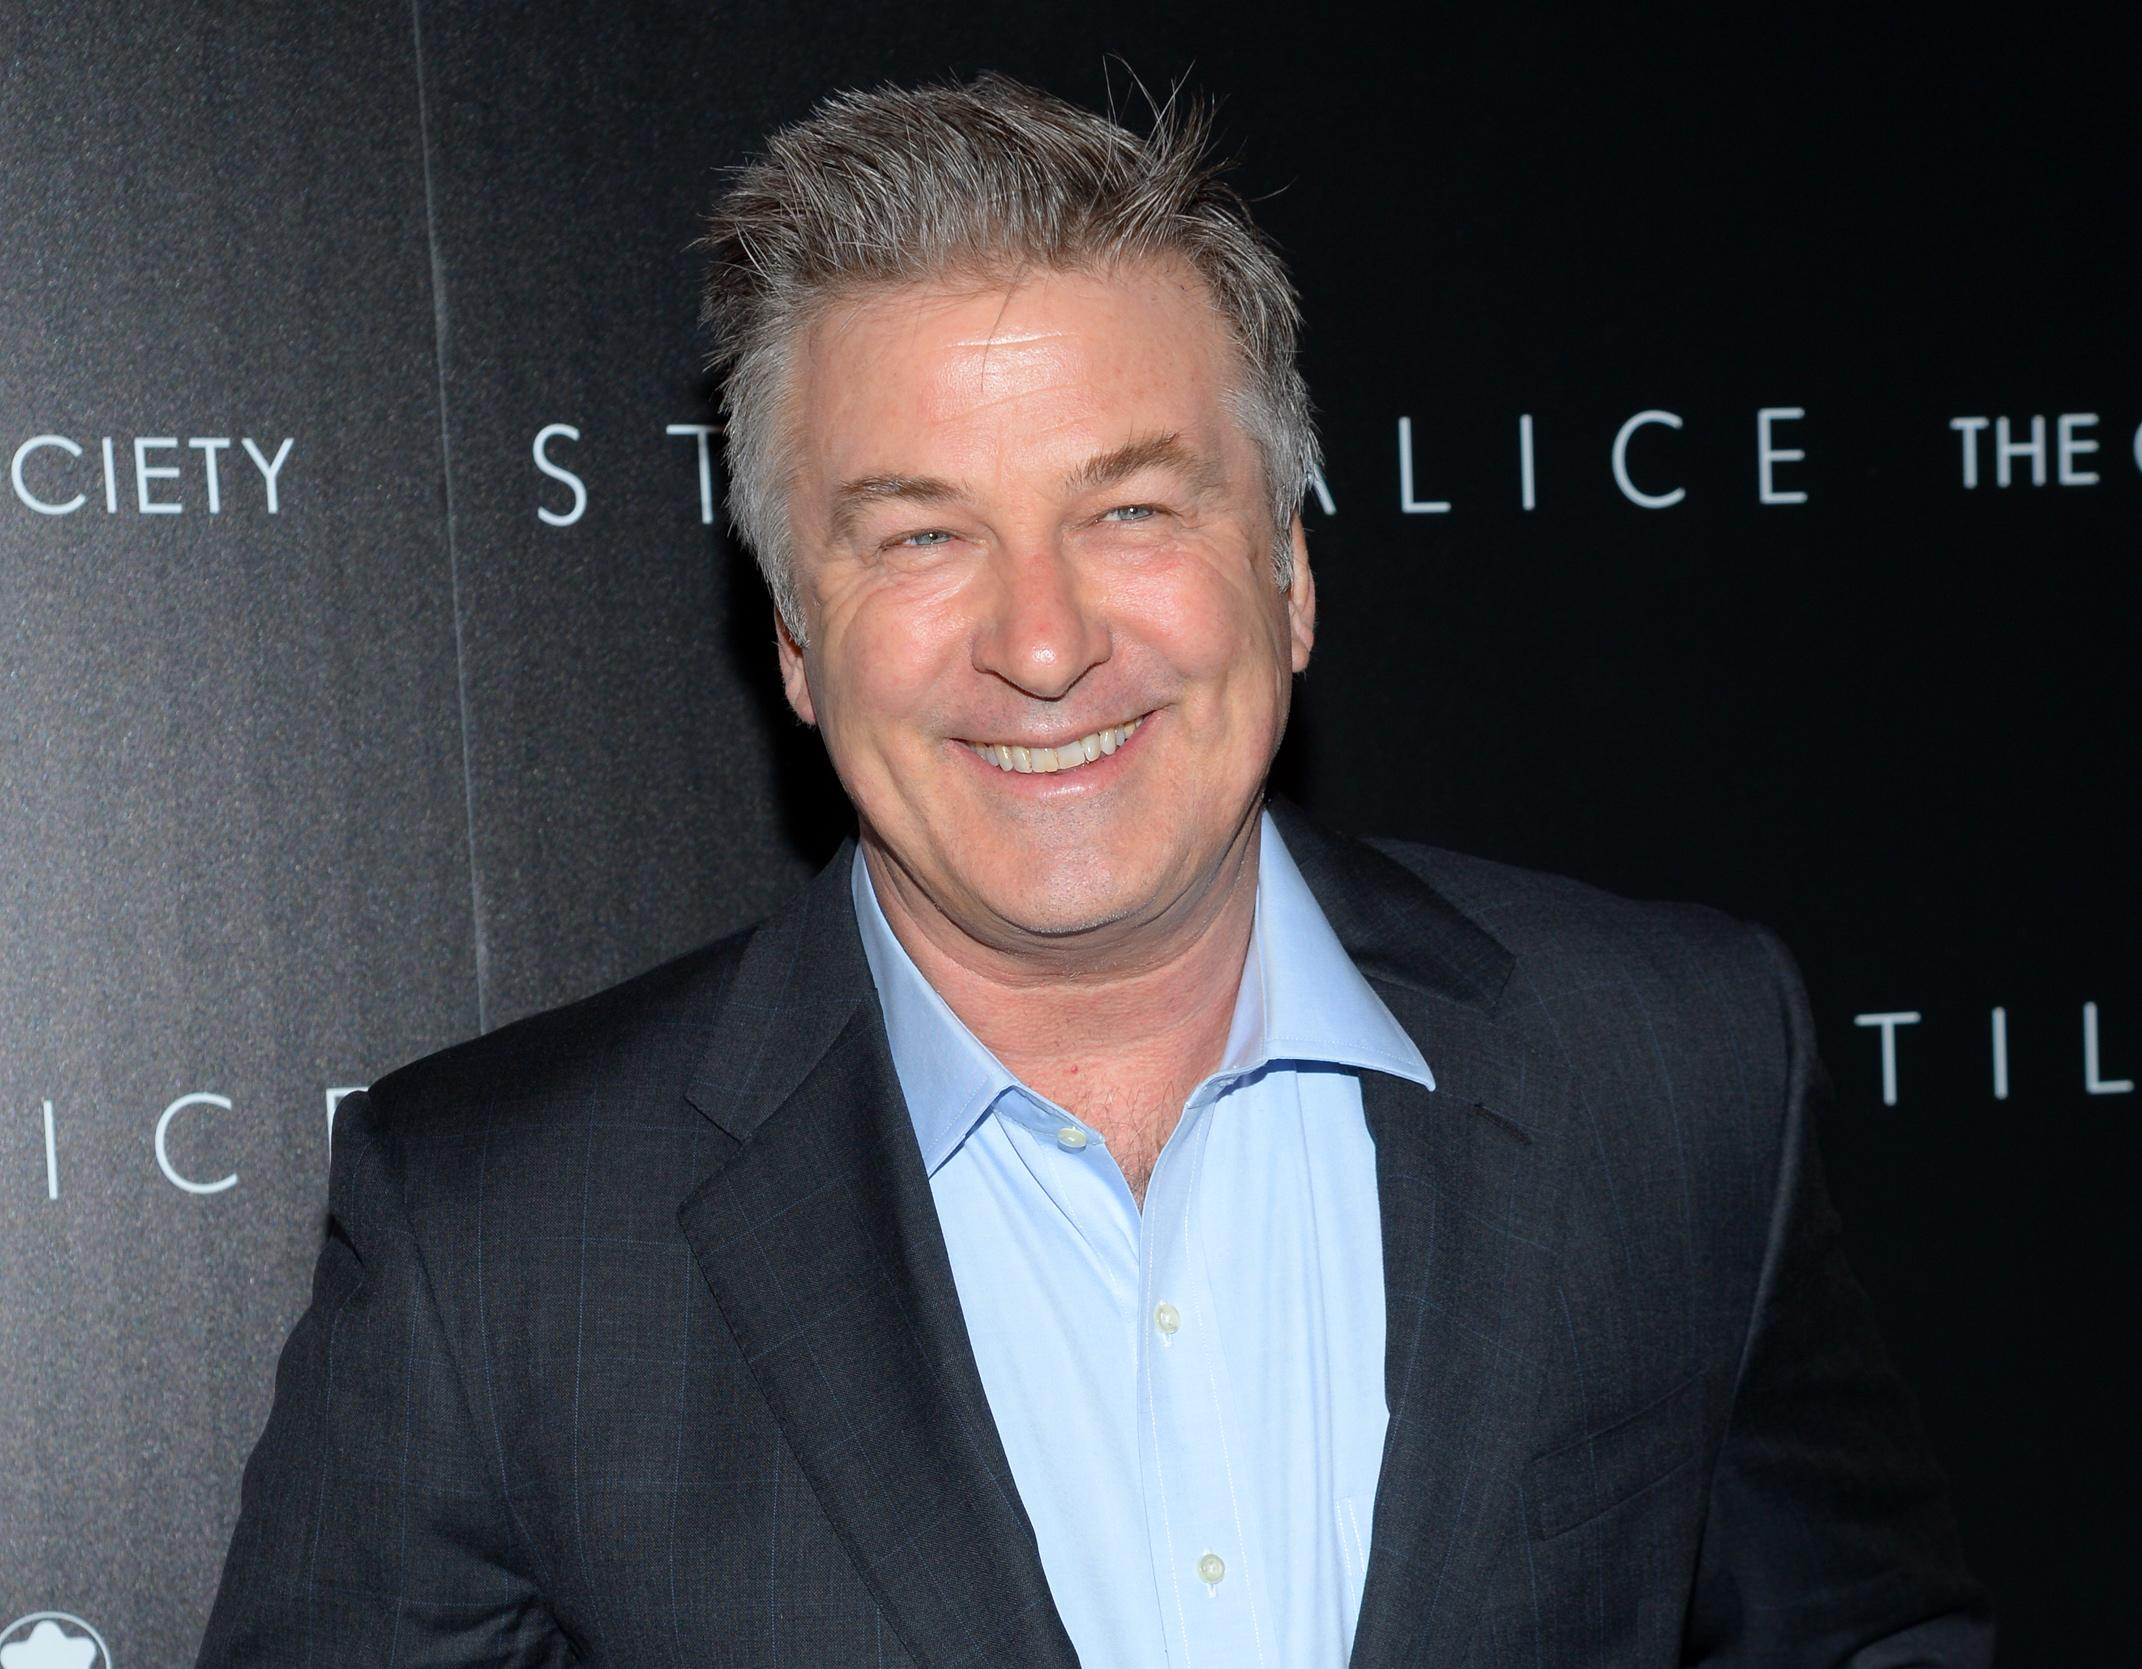 Alec Baldwin memoir to be published in fall 2016